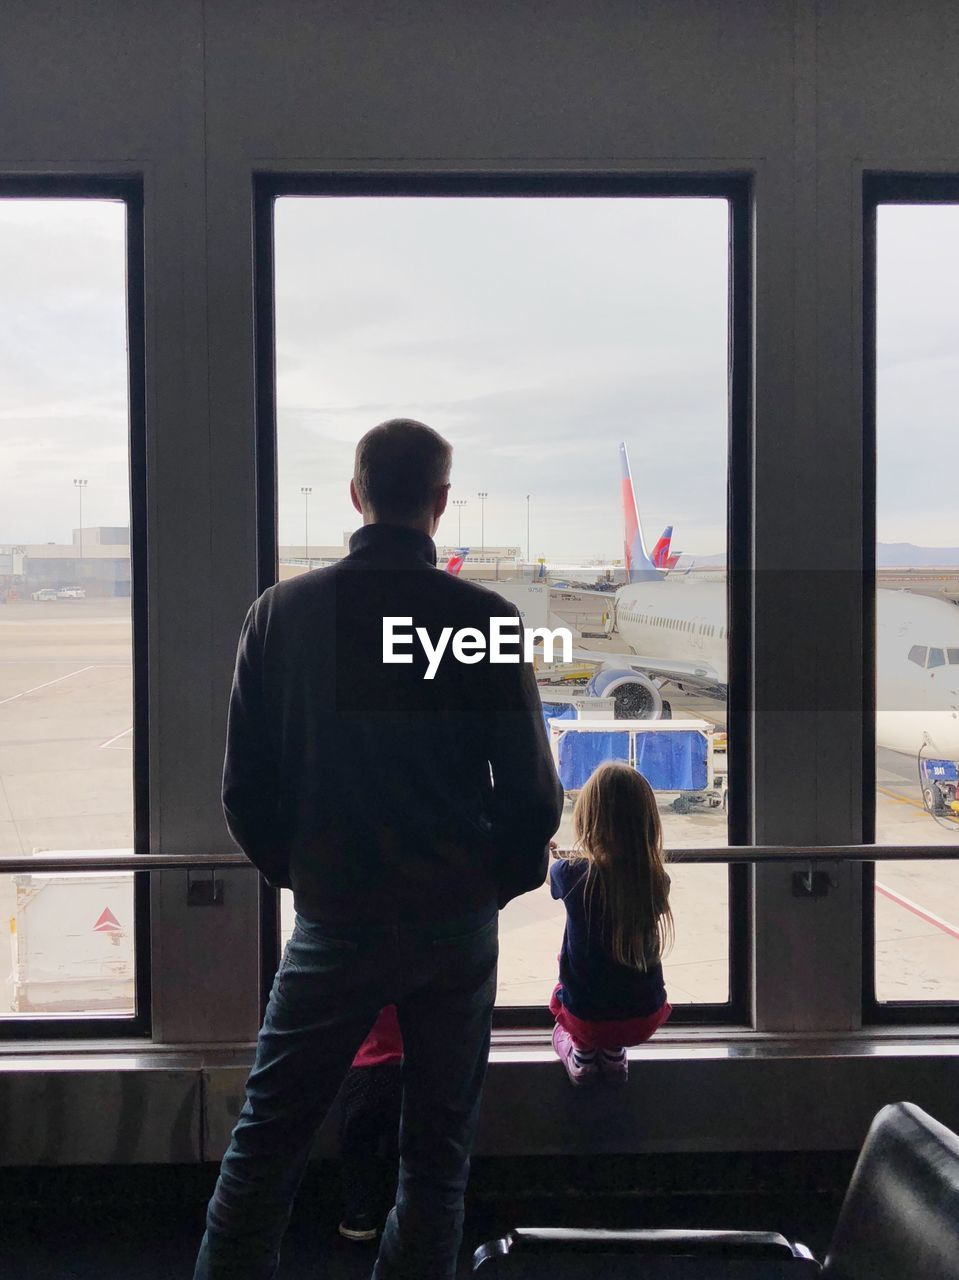 window, rear view, transparent, glass - material, transportation, real people, mode of transportation, men, public transportation, travel, women, looking, air vehicle, people, airplane, airport, standing, lifestyles, looking through window, three quarter length, outdoors